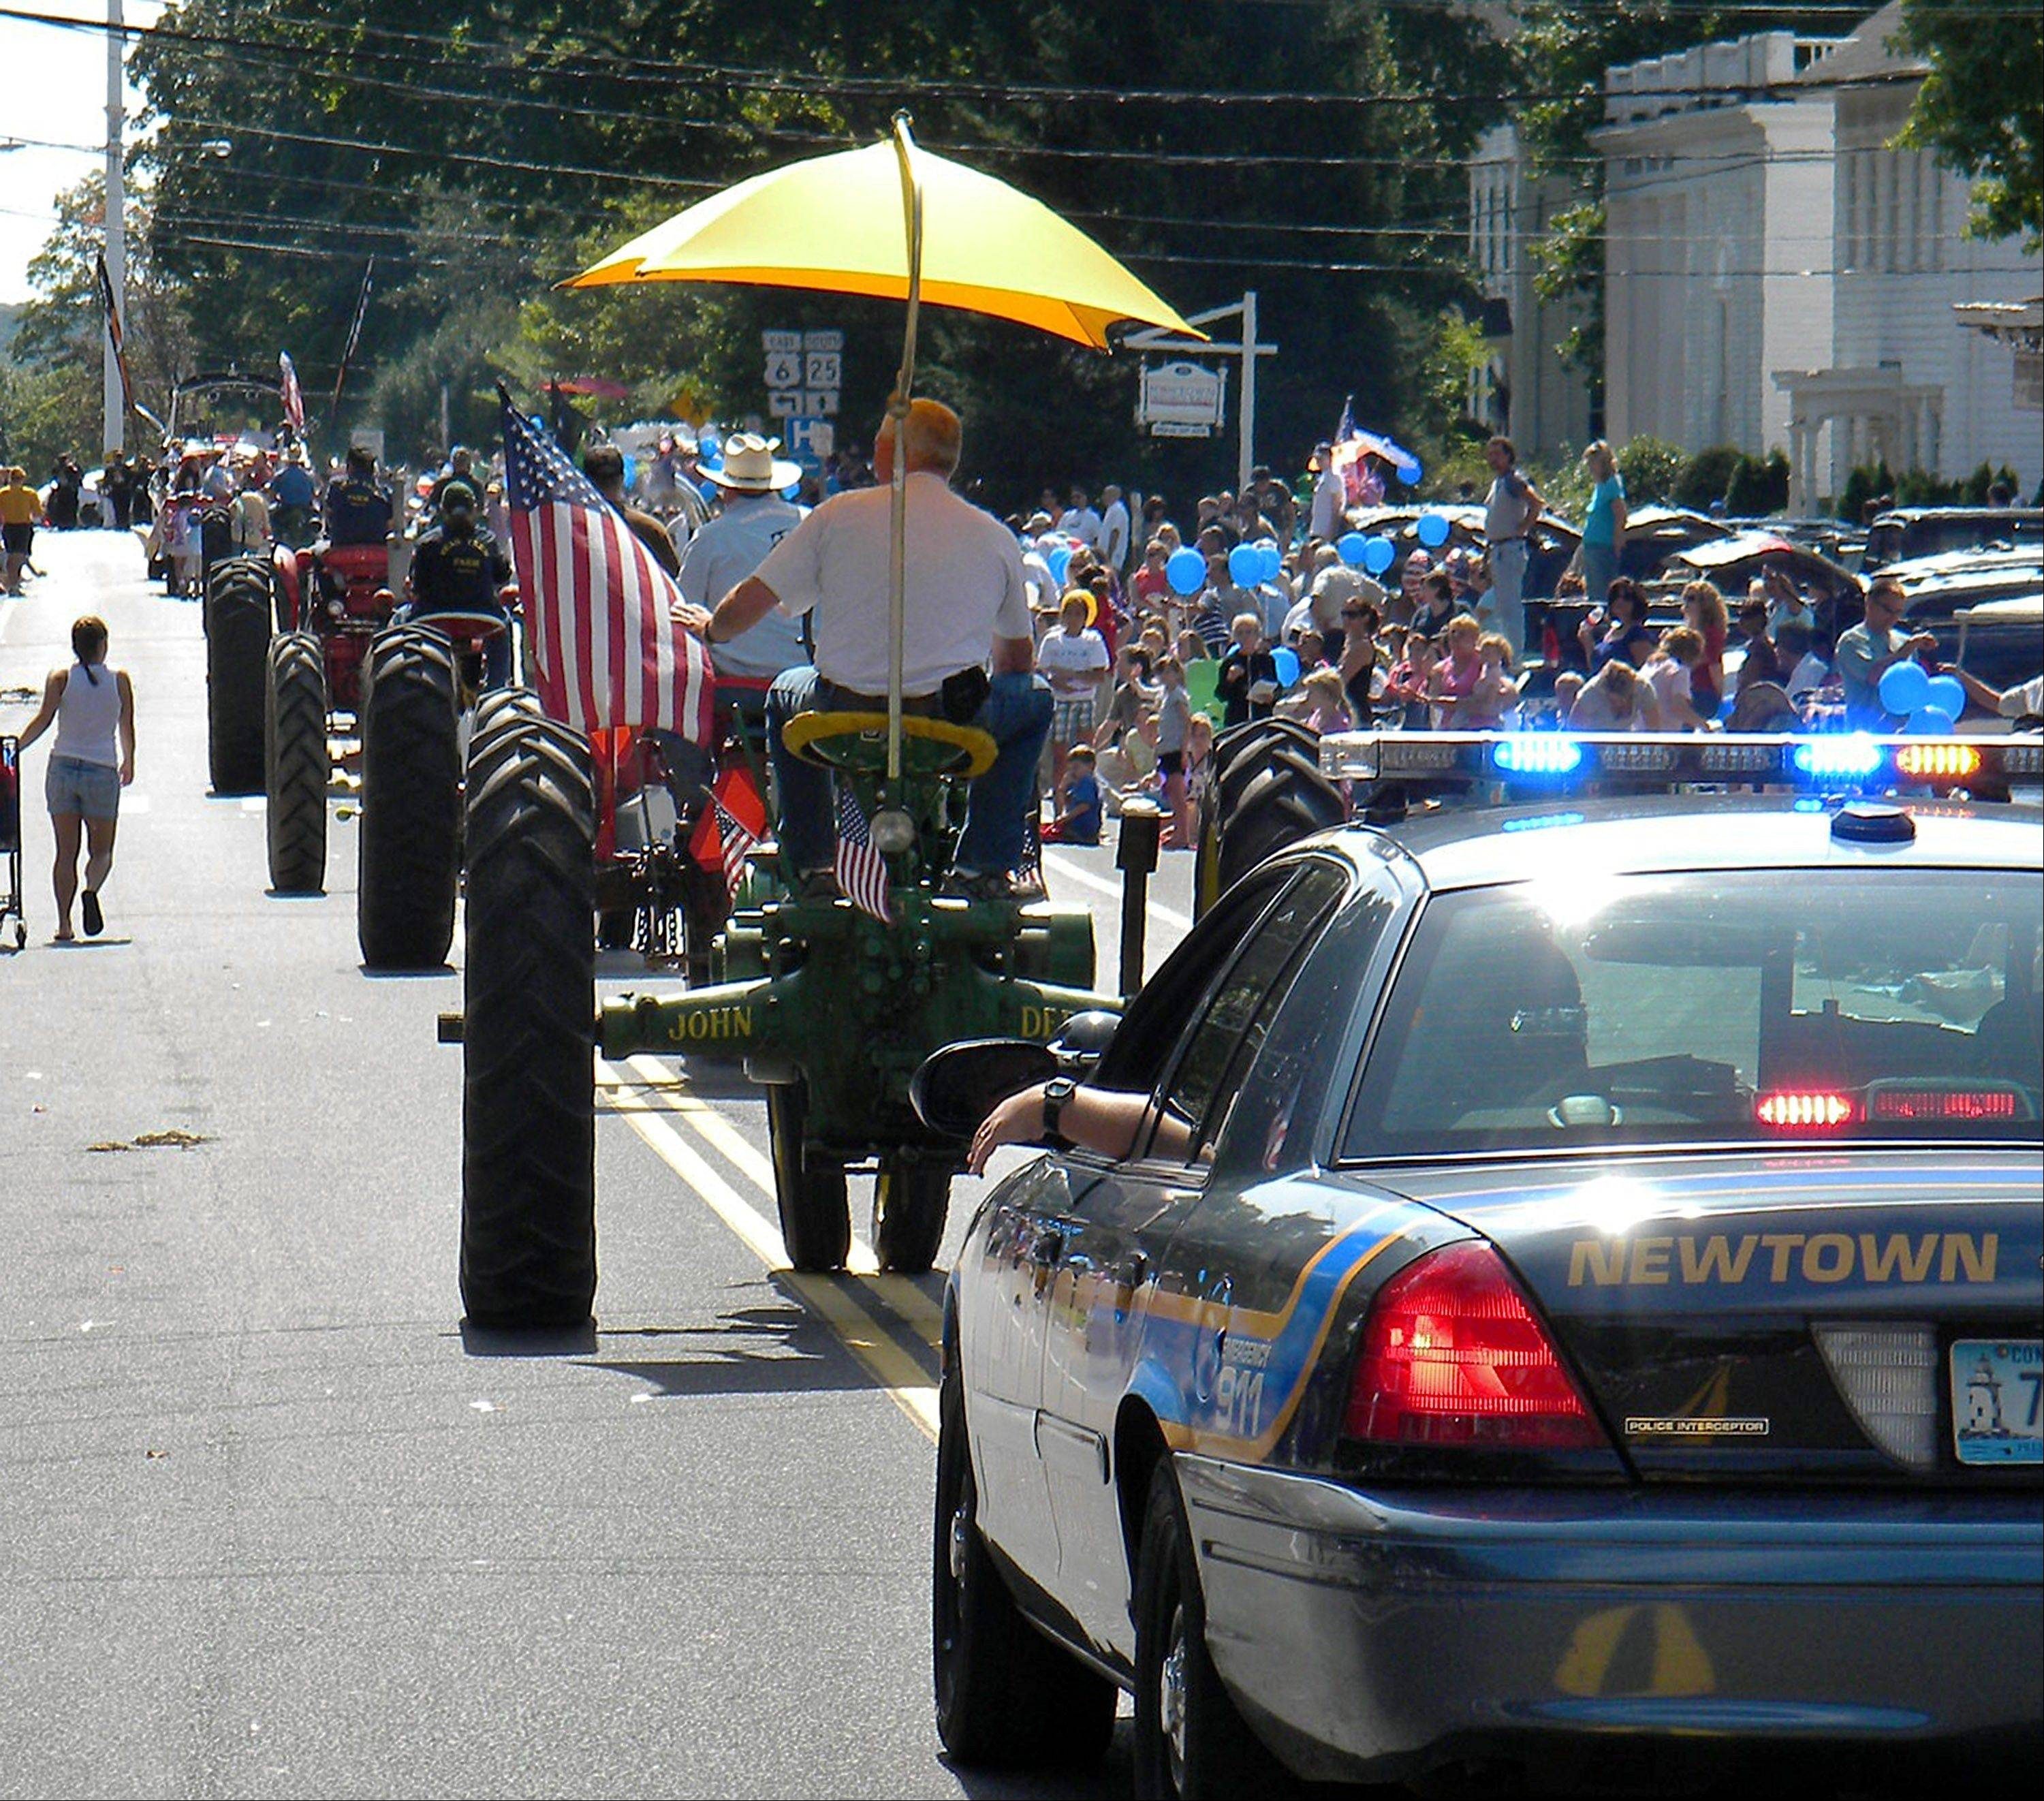 A convoy of modern and antique tractors with a police escort brings up the rear of the Labor Day parade in Newtown, Conn. The town's annual parade for 2013 comes nearly nine months after shootings at Sandy Hook Elementary School left 26 dead, 20 of them children.